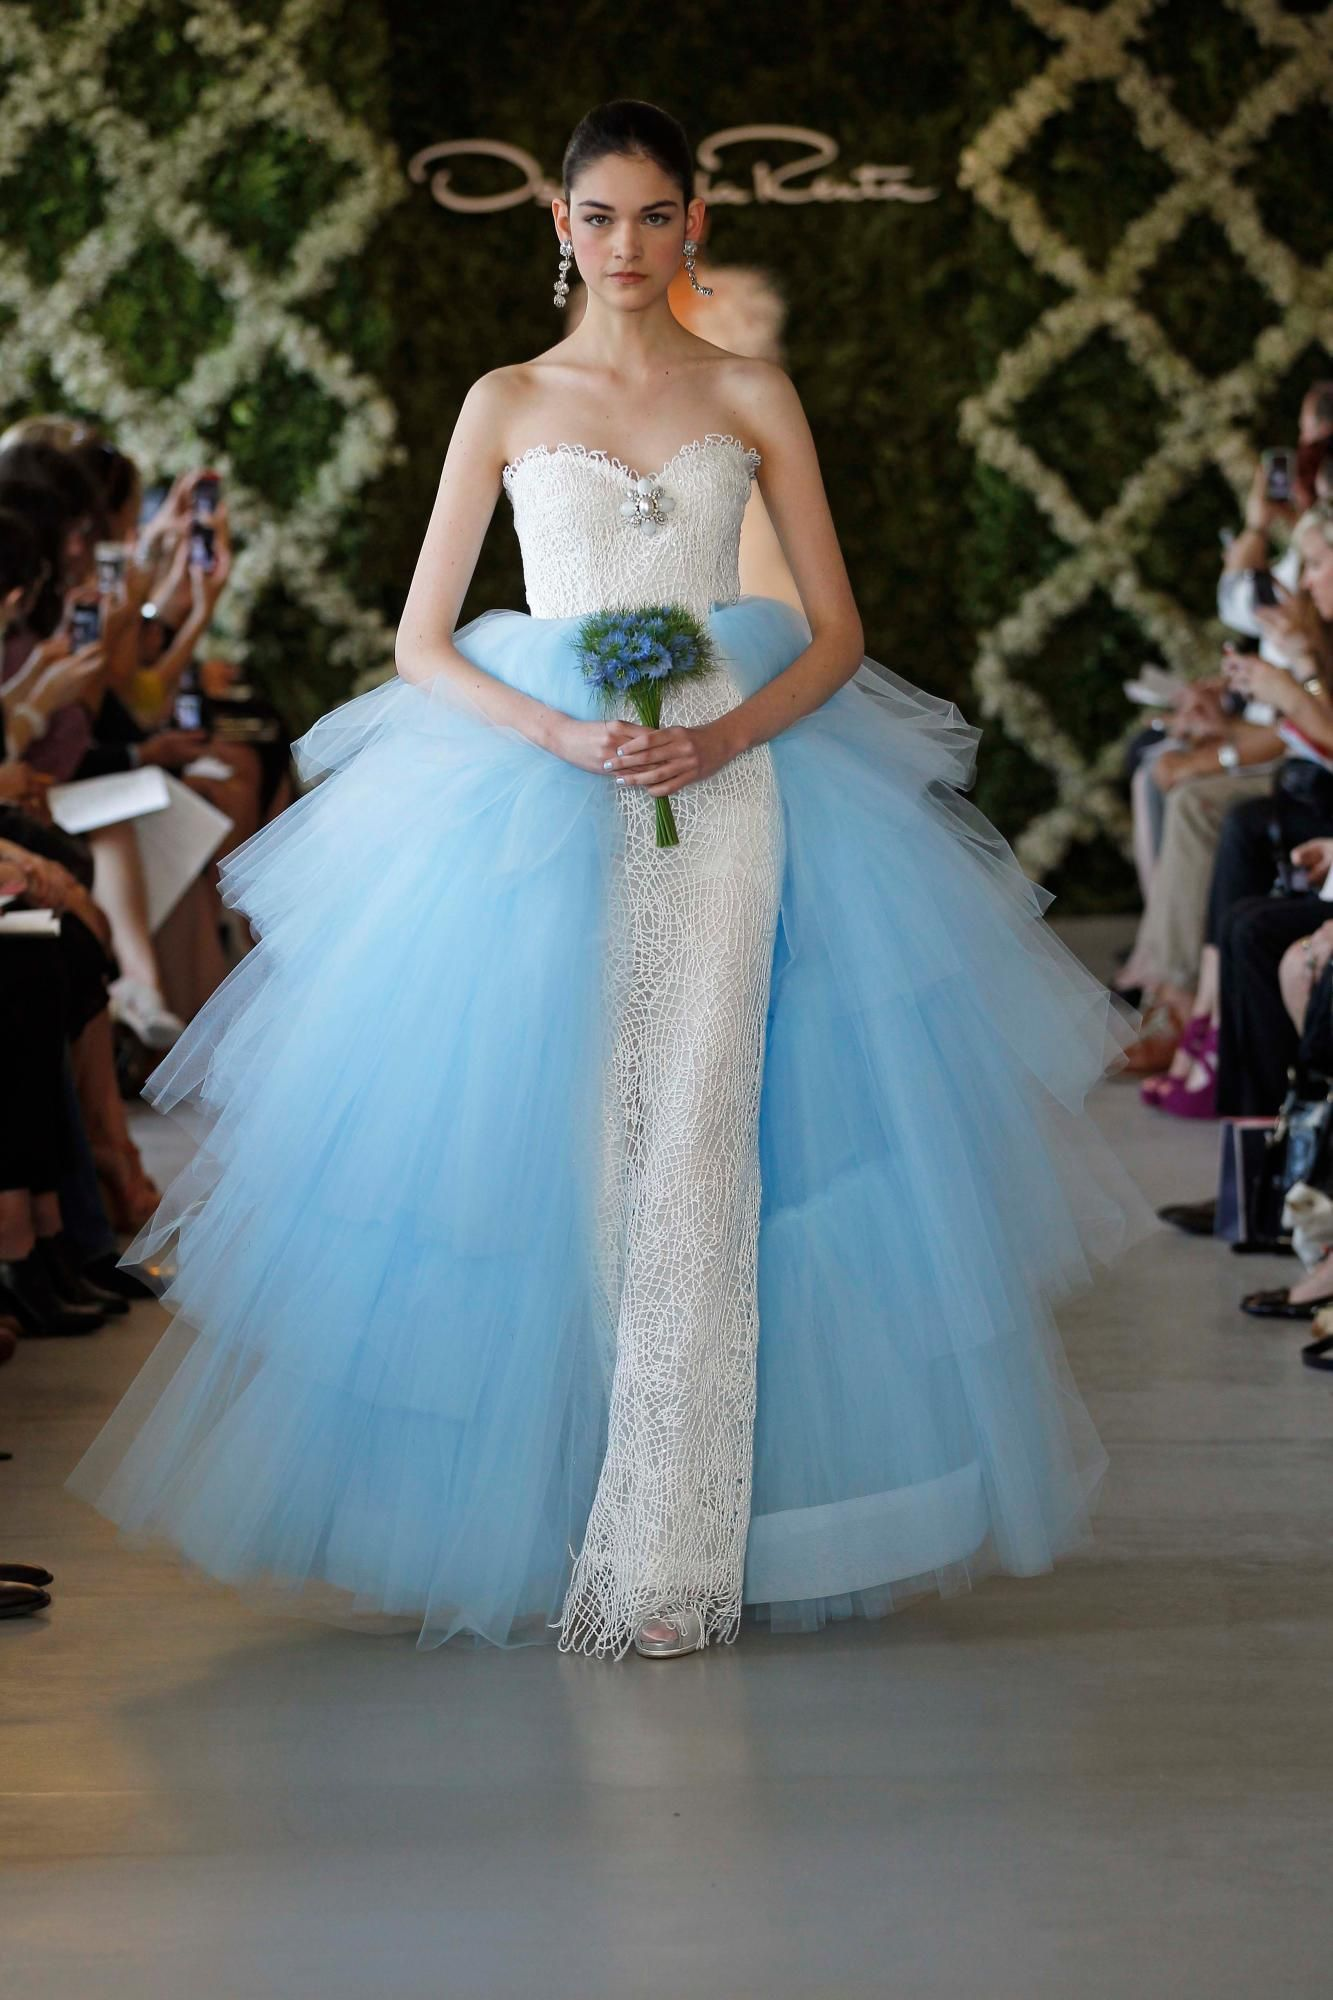 Colorful Gowns and a Crop Top Take the Runway at Oscar de la Renta ...